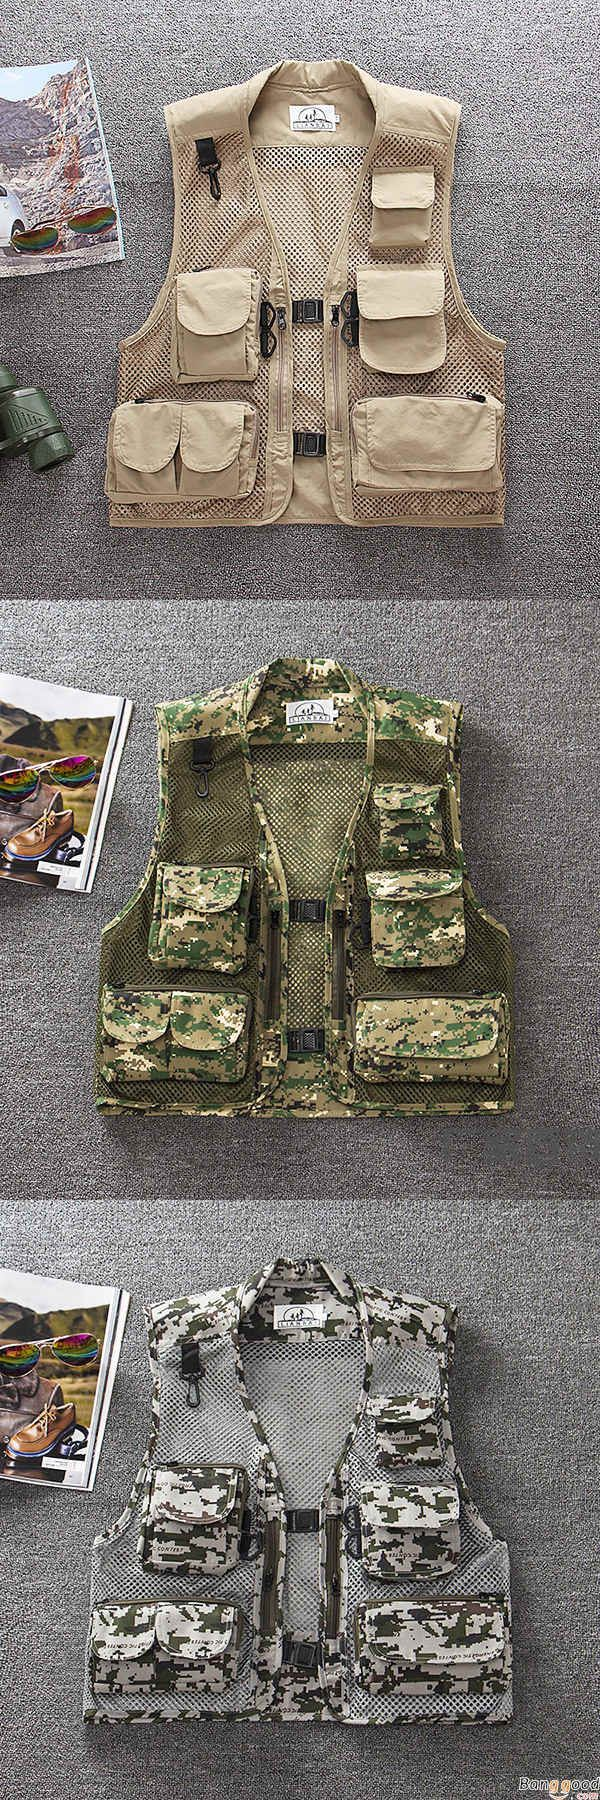 US$35.88 + Free Shipping. Mens Summer Outdooors Mesh Camouflage Solid Color Multi Pocket Fishing Vest Photography Waistcoat. US Size: S - XL. Color: Gray Camo, Green Camo, Navy Blue, Beige. Shop Now.